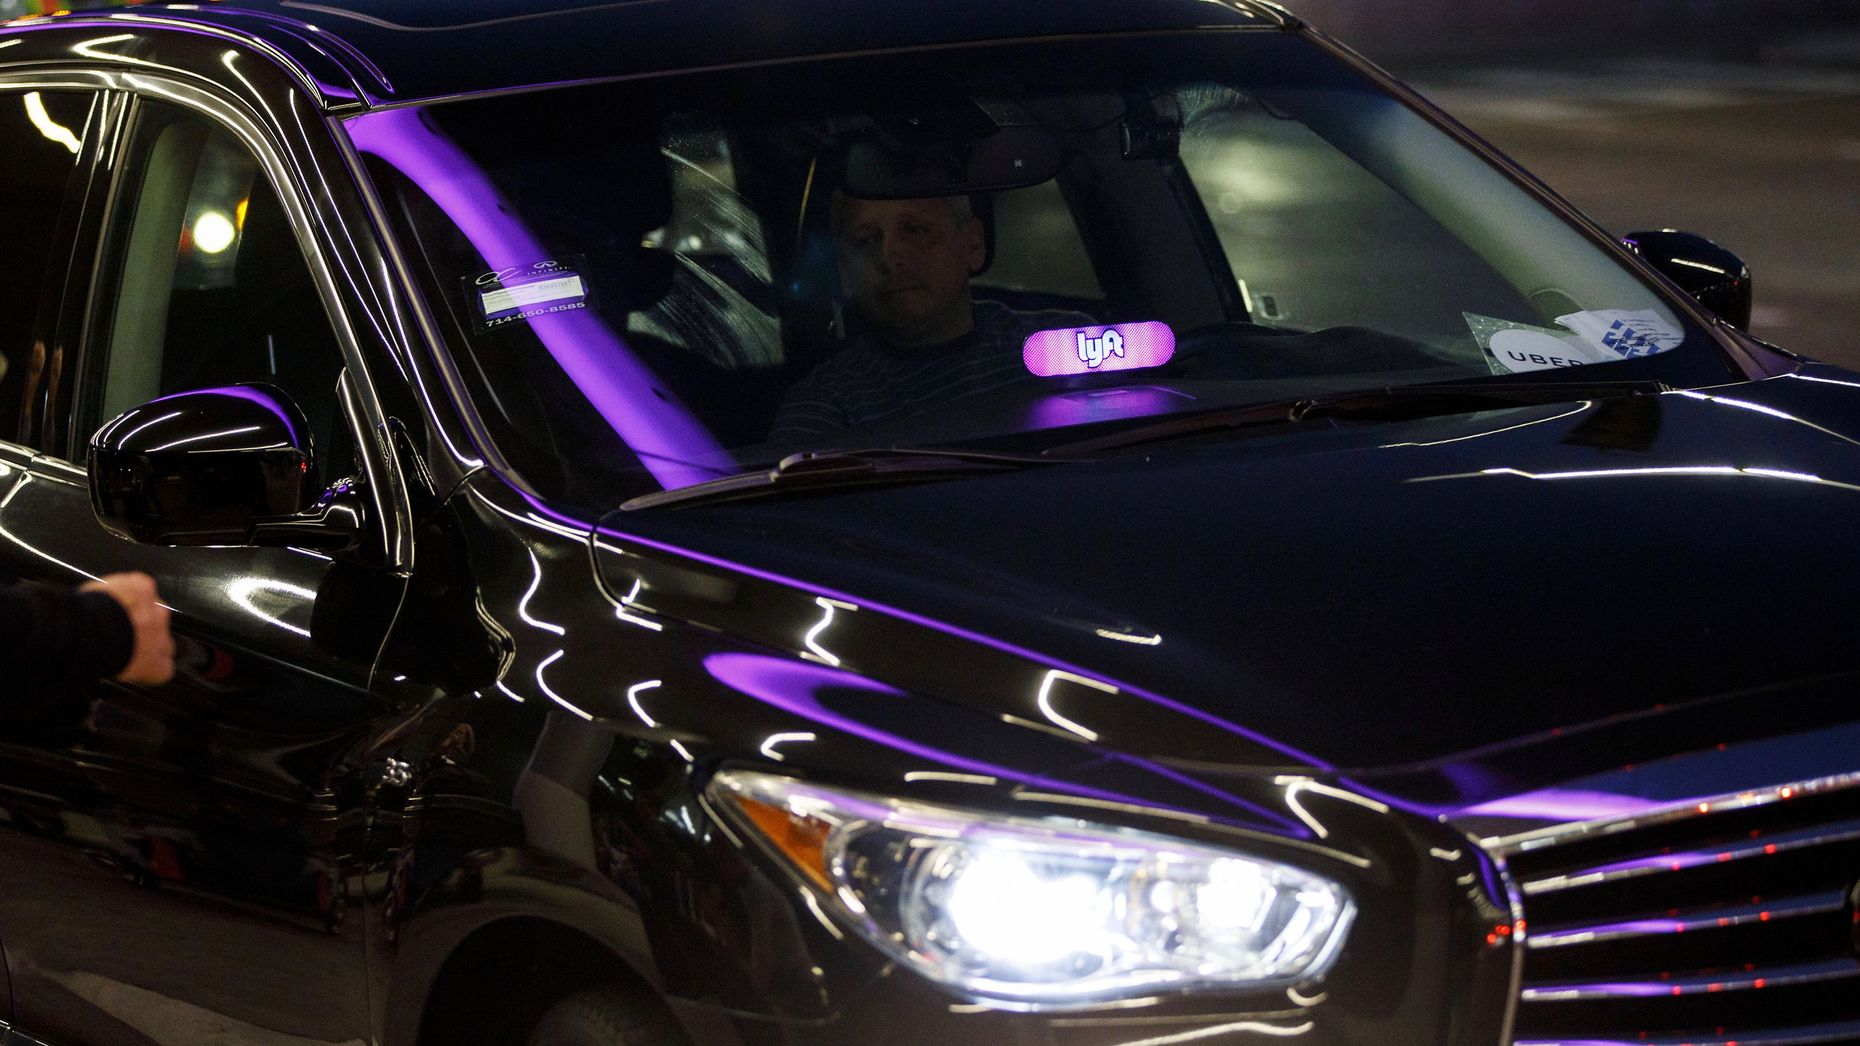 A Lyft car. Photo by Bloomberg.